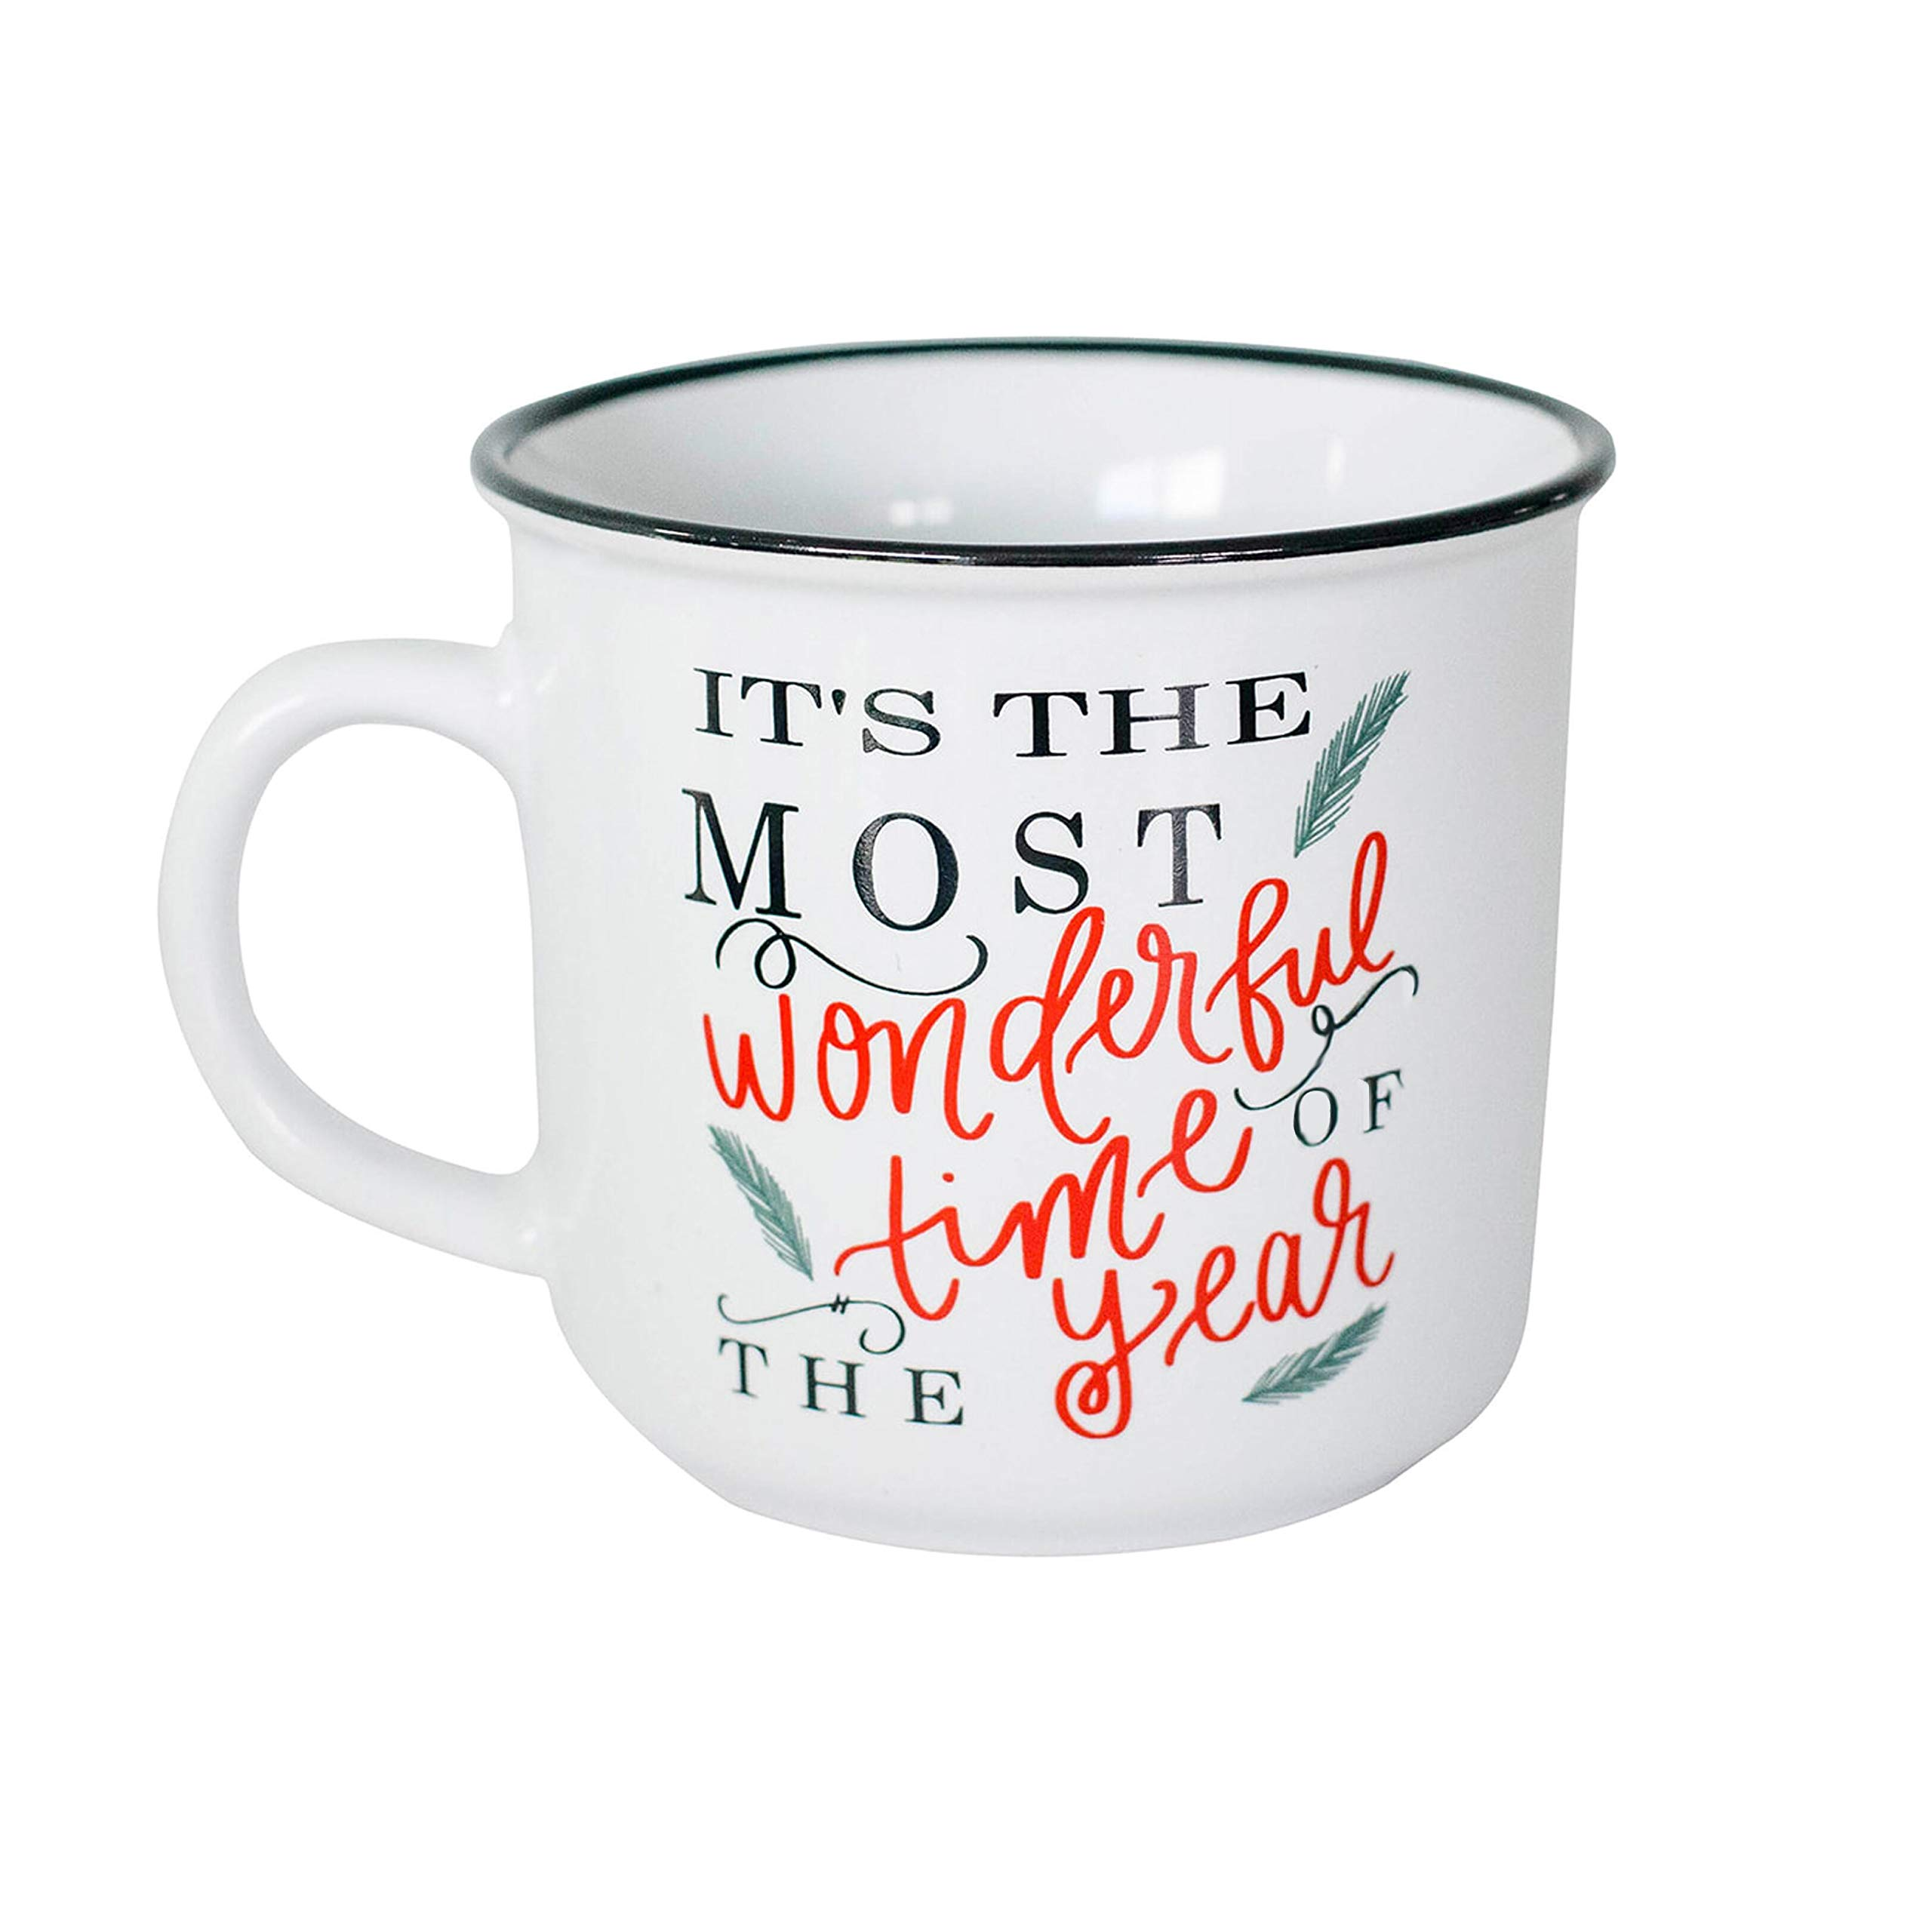 Sweet Water Decor It's The Most Wonderful Time of The Year Mug Coffee Lover for Her Cookies and Milk for Santa Holiday Accessories Stocking Stuffer Winter Hot Cocoa